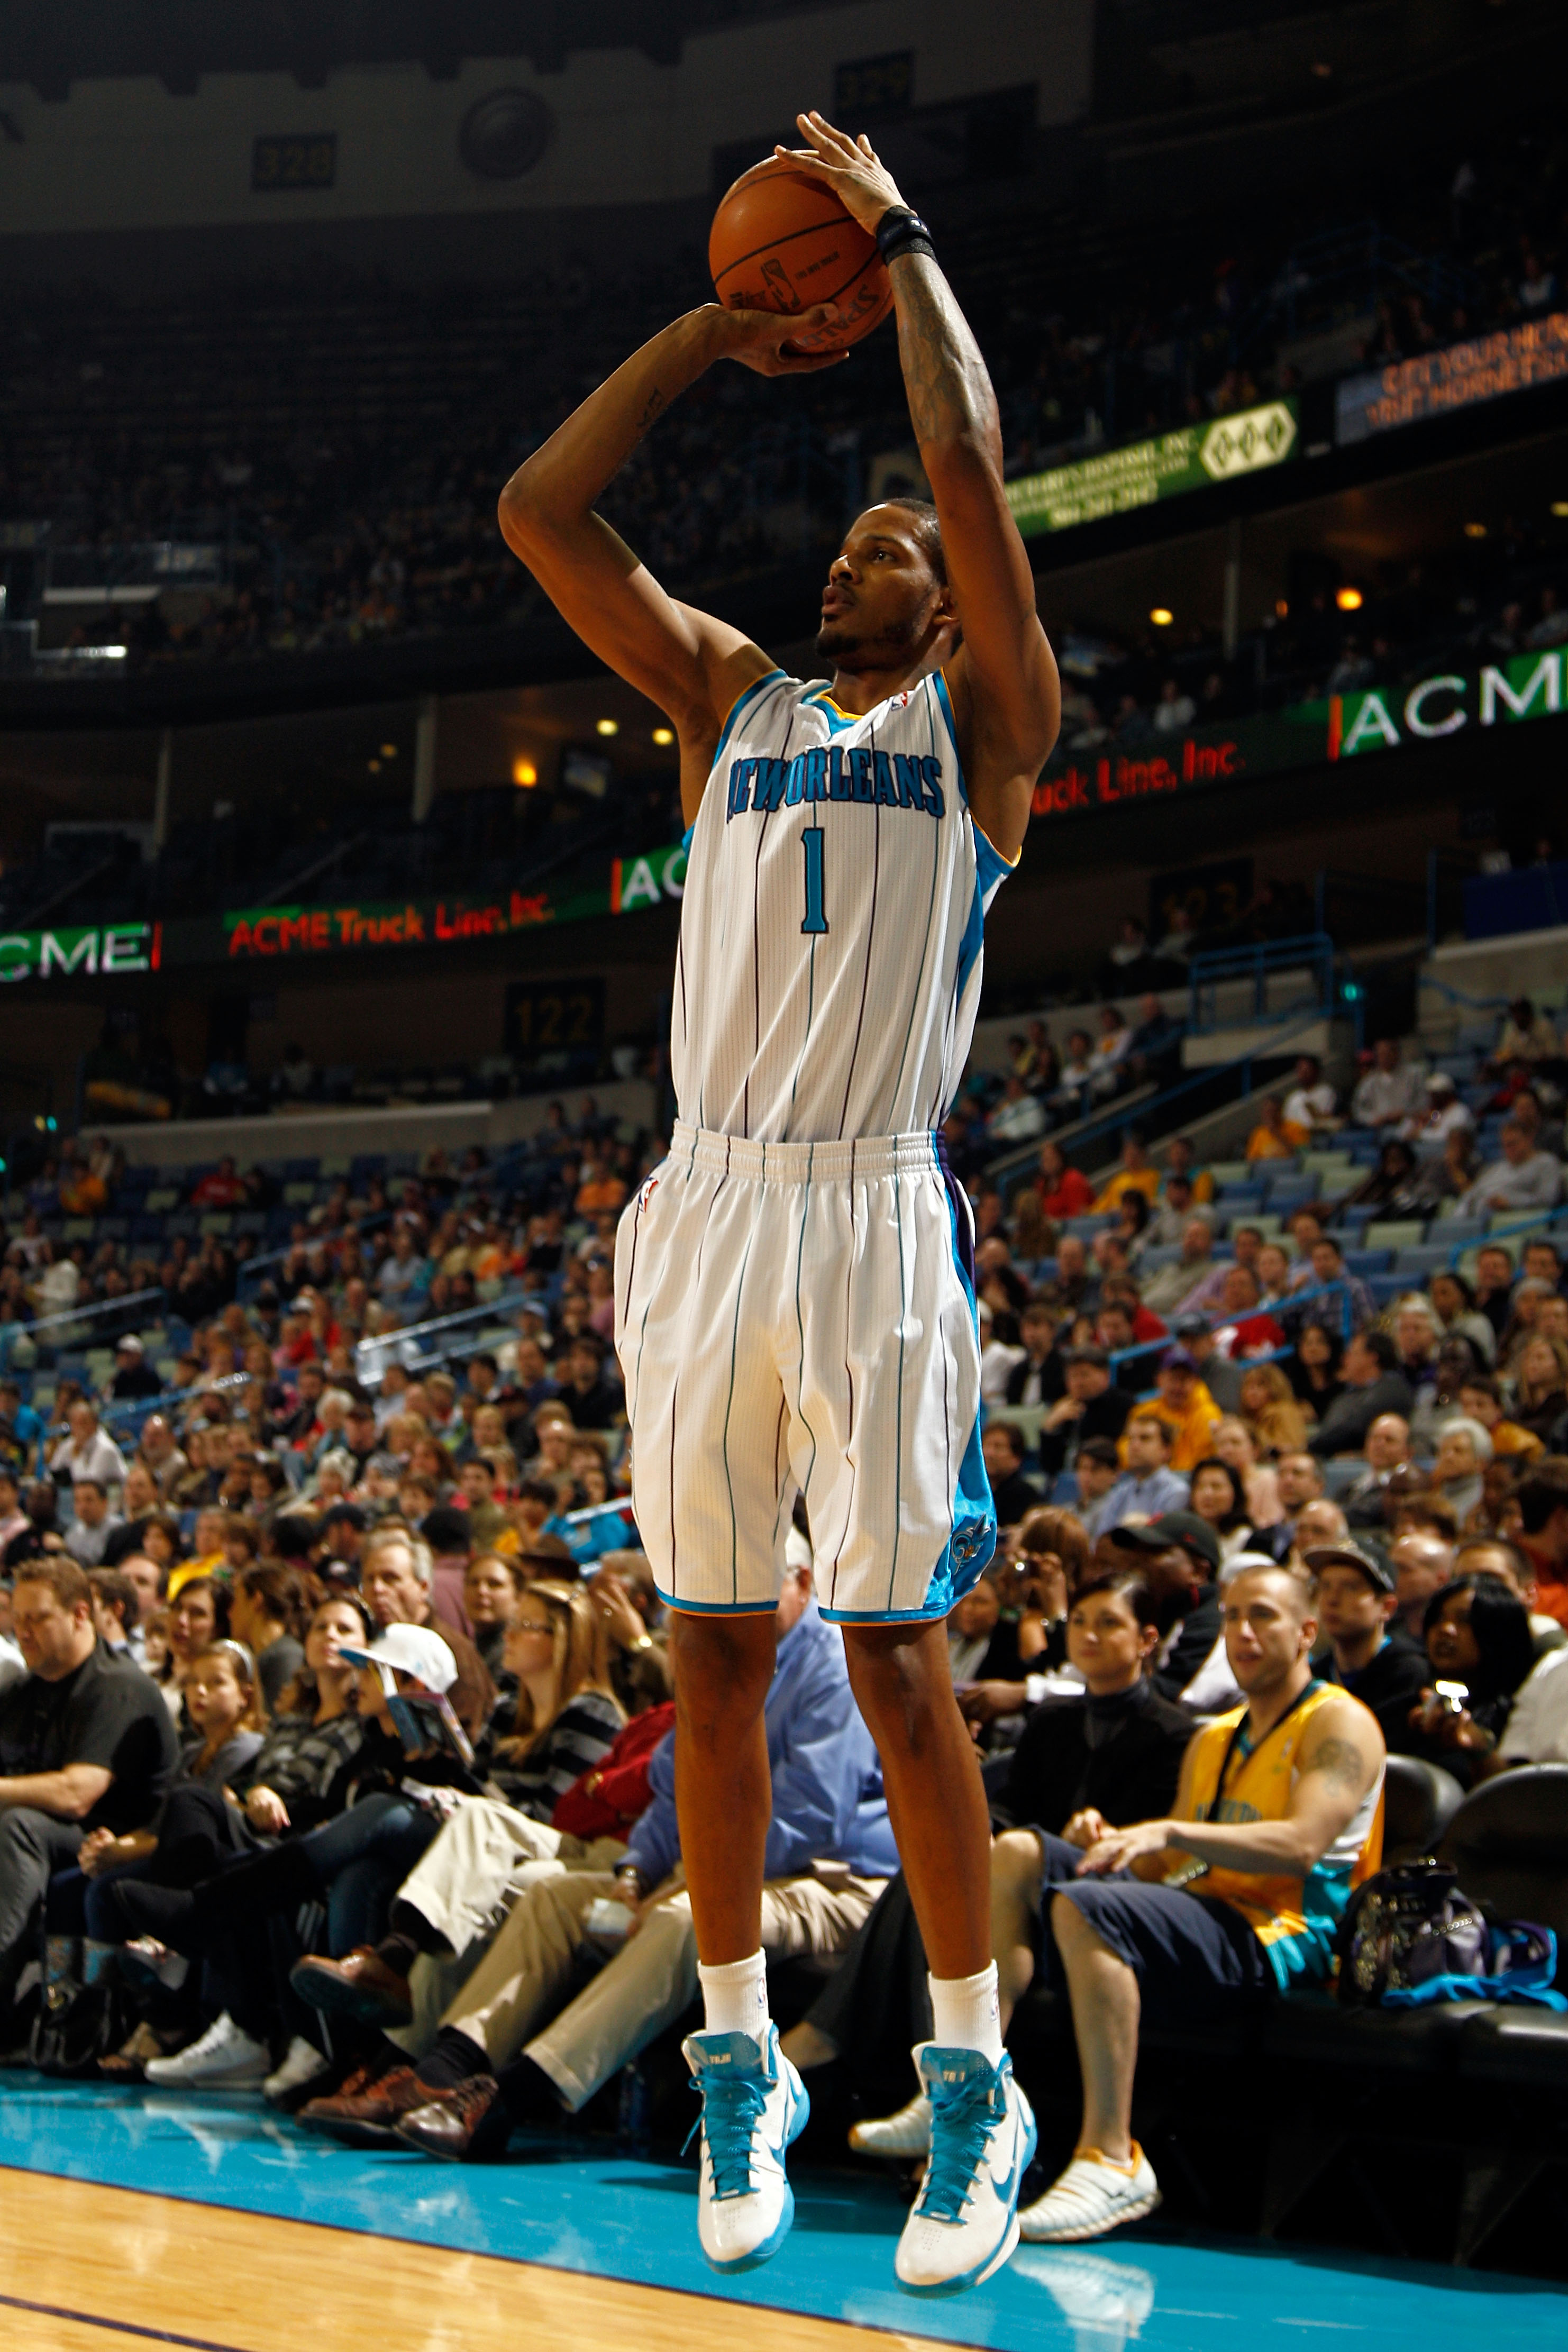 NEW ORLEANS, LA - JANUARY 03:  Trevor Ariza #1 of the New Orleans Hornets shoots a three-pointer against the Philadelphia 76ers at New Orleans Arena on January 3, 2011 in New Orleans, Louisiana. NOTE TO USER: User expressly acknowledges and agrees that, b